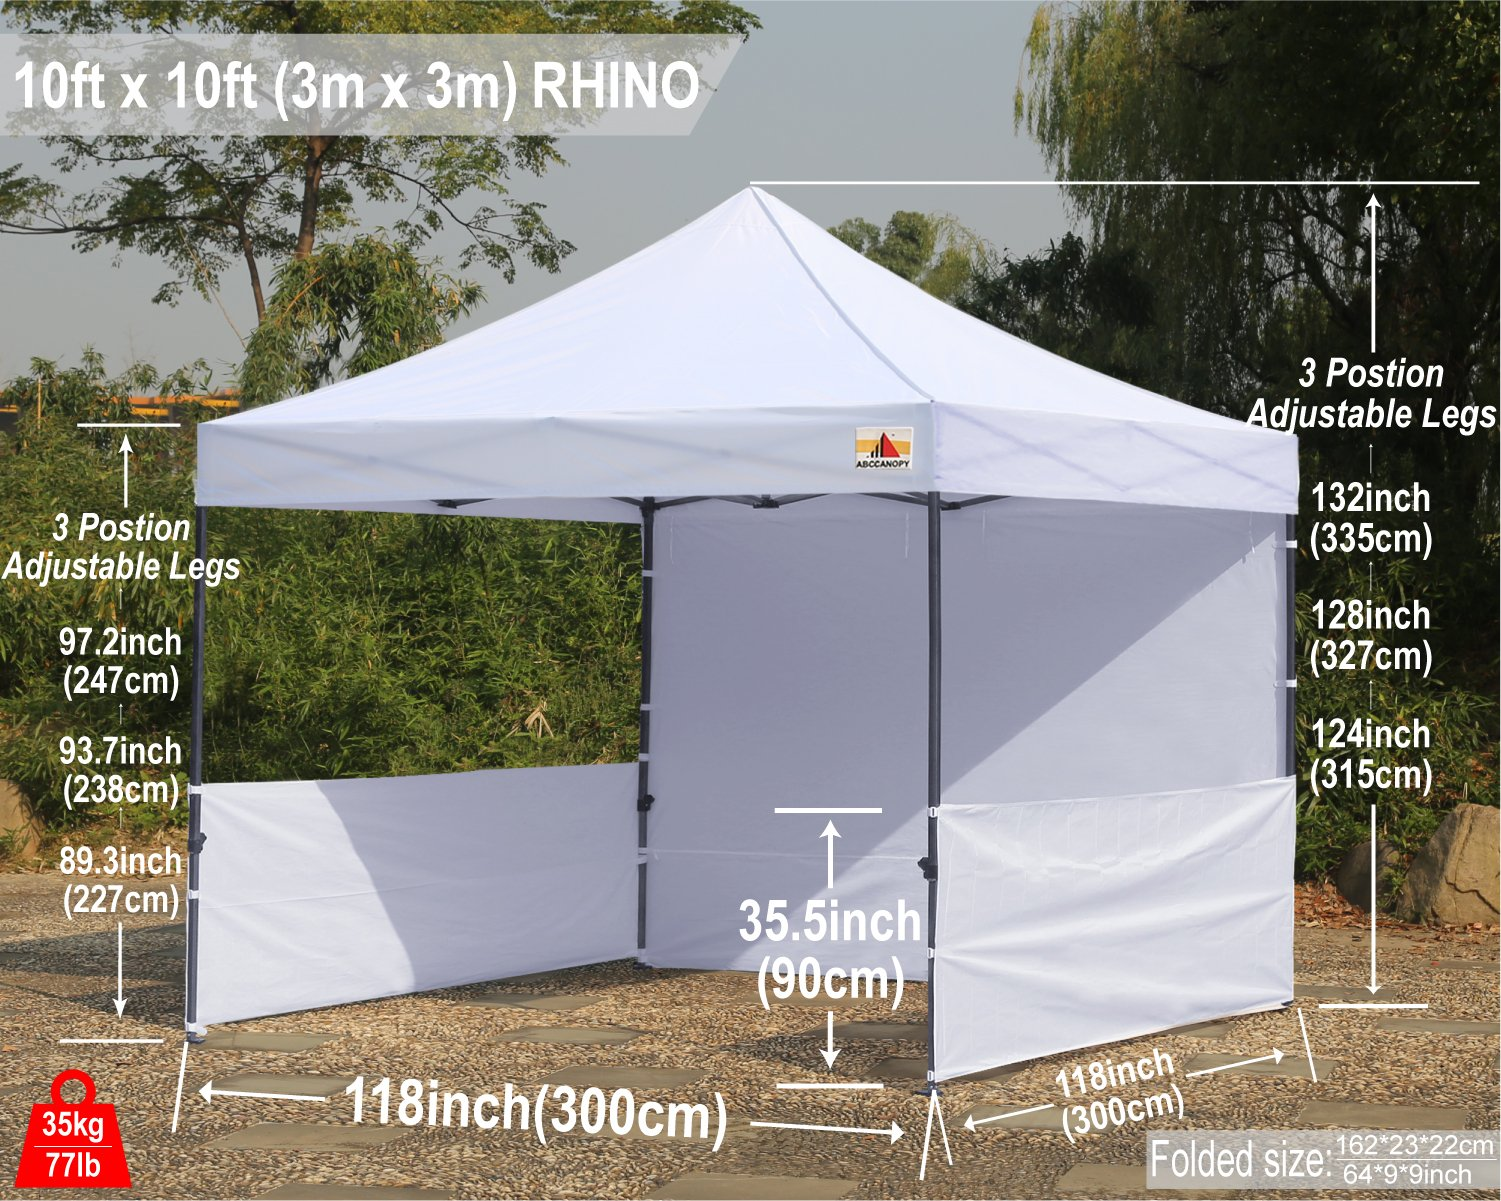 ABCCANOPY 10 x10 Pop Up Canopy Commercial Event Canopy Market Stall Canopy Booth Outdoor Trade Show Booth With Wheeled Carry Bags by abccanopy (Image #9)